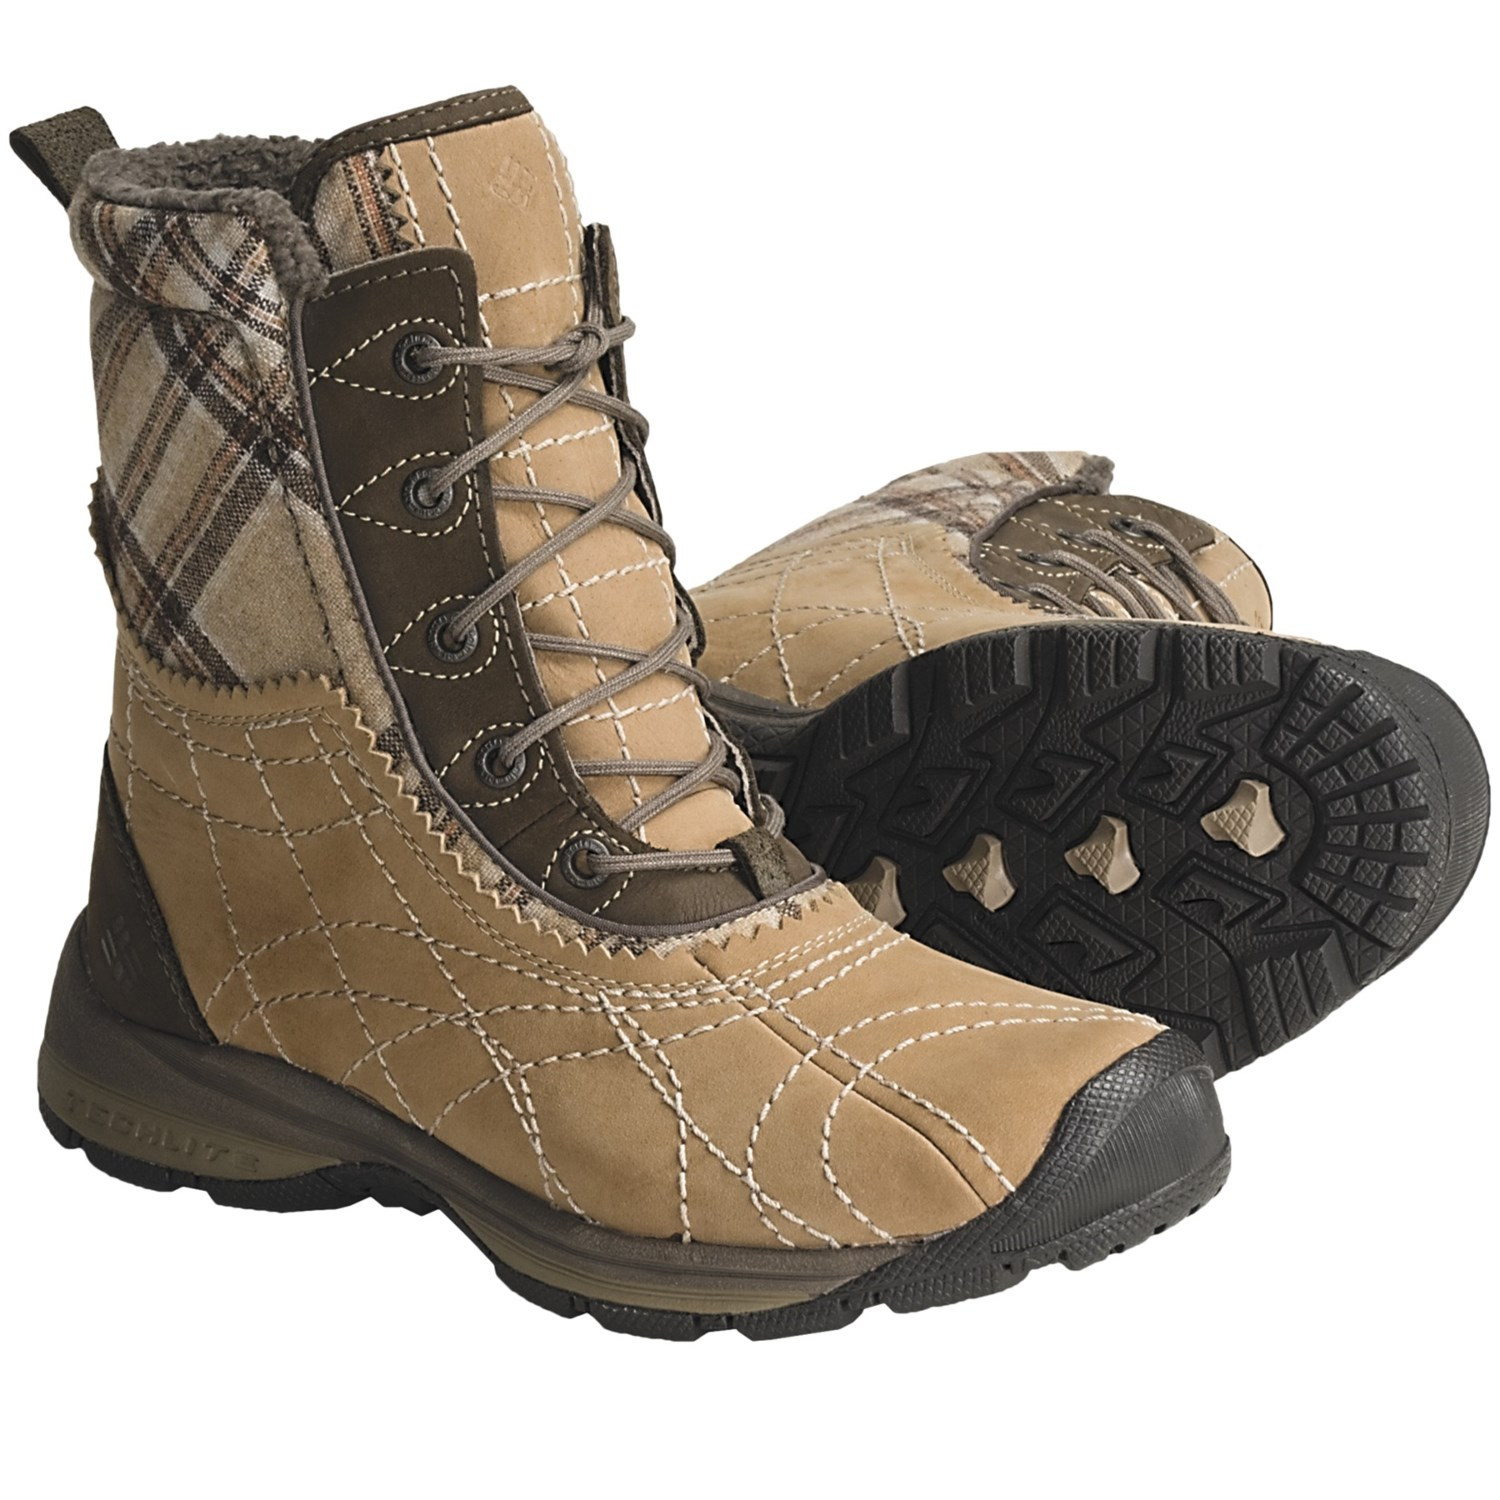 Columbia Sportswear Bugaice 2 Winter Boots - Waterproof, Insulated